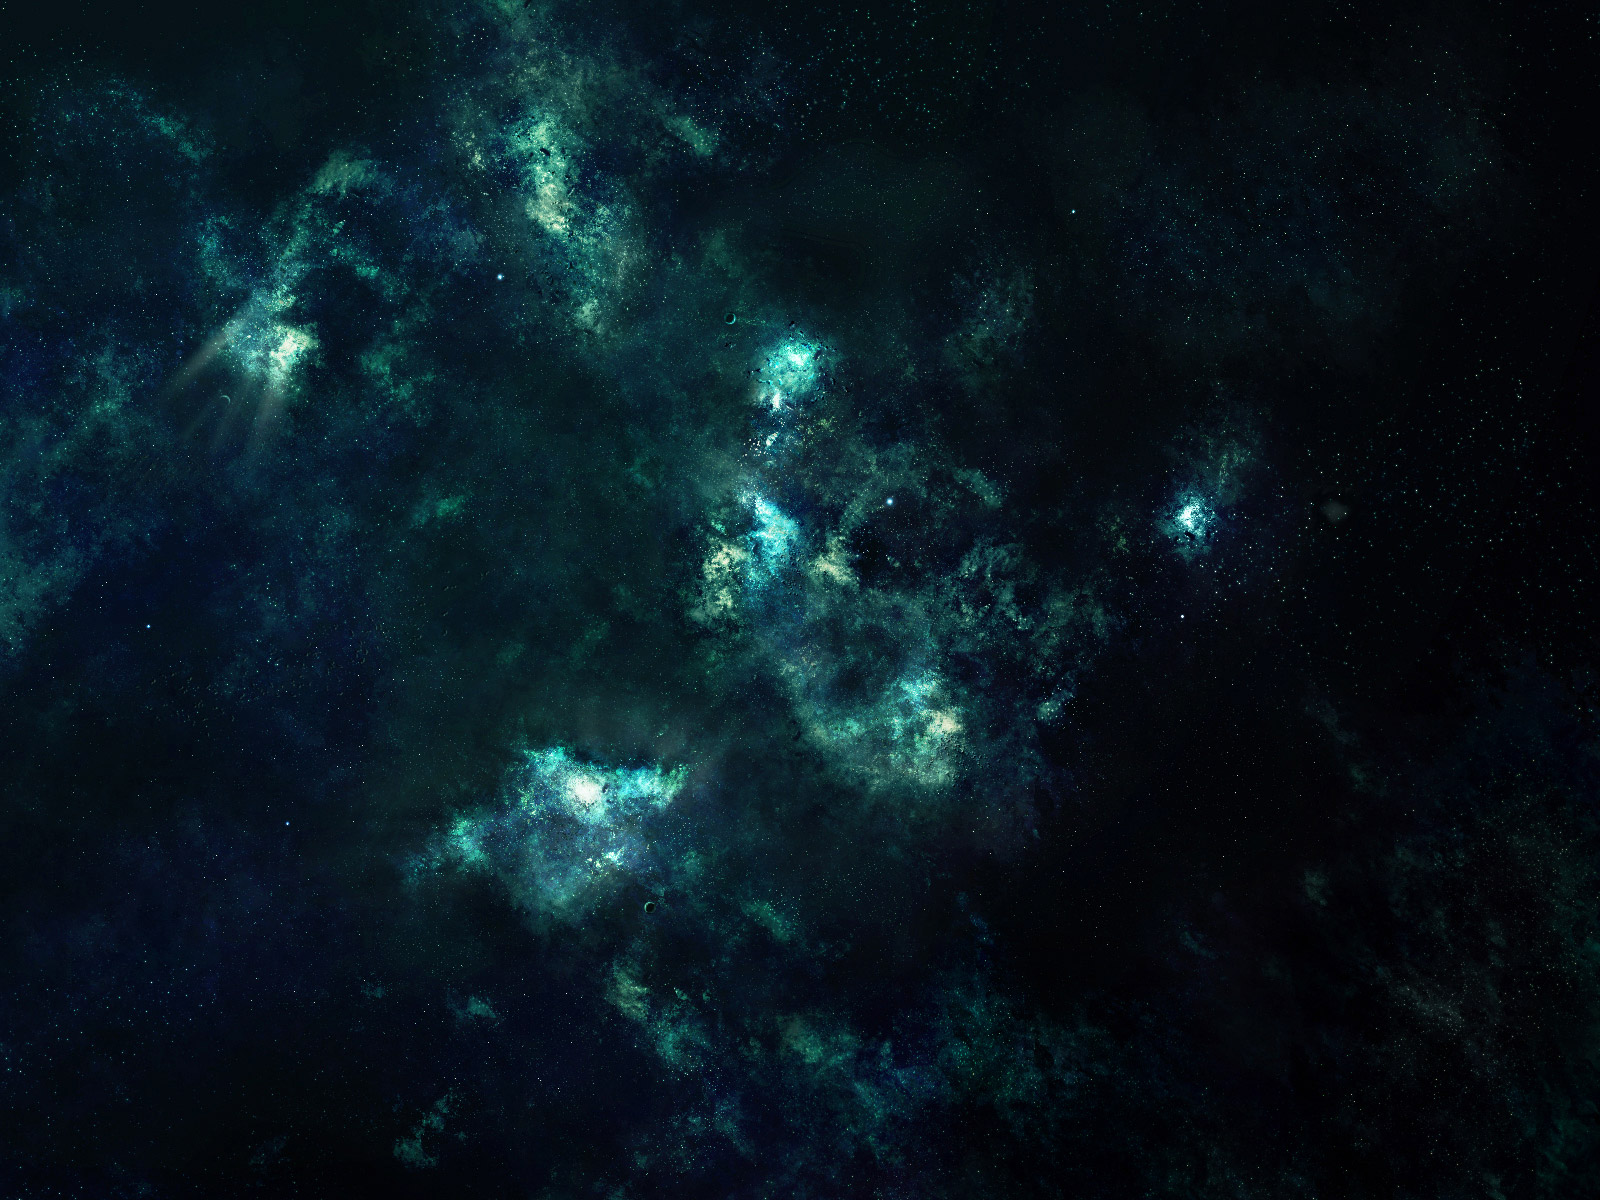 astronomy and space wallpaper are very beautiful my image